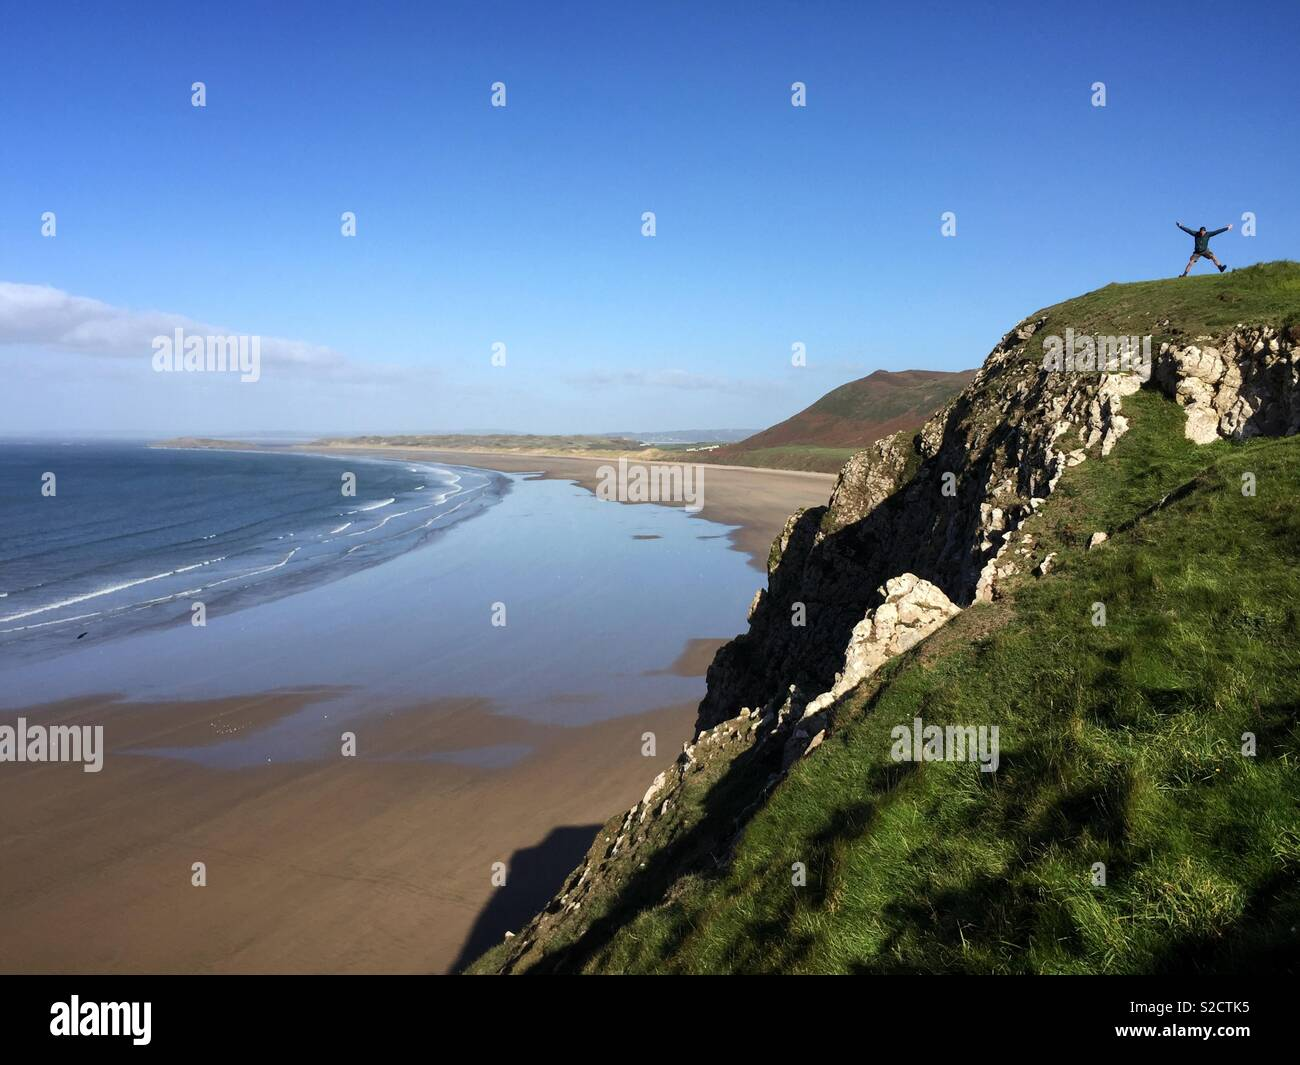 A man does a star jump on the cliff top at Rhossili Bay on the Gower Peninsular in Wales. - Stock Image